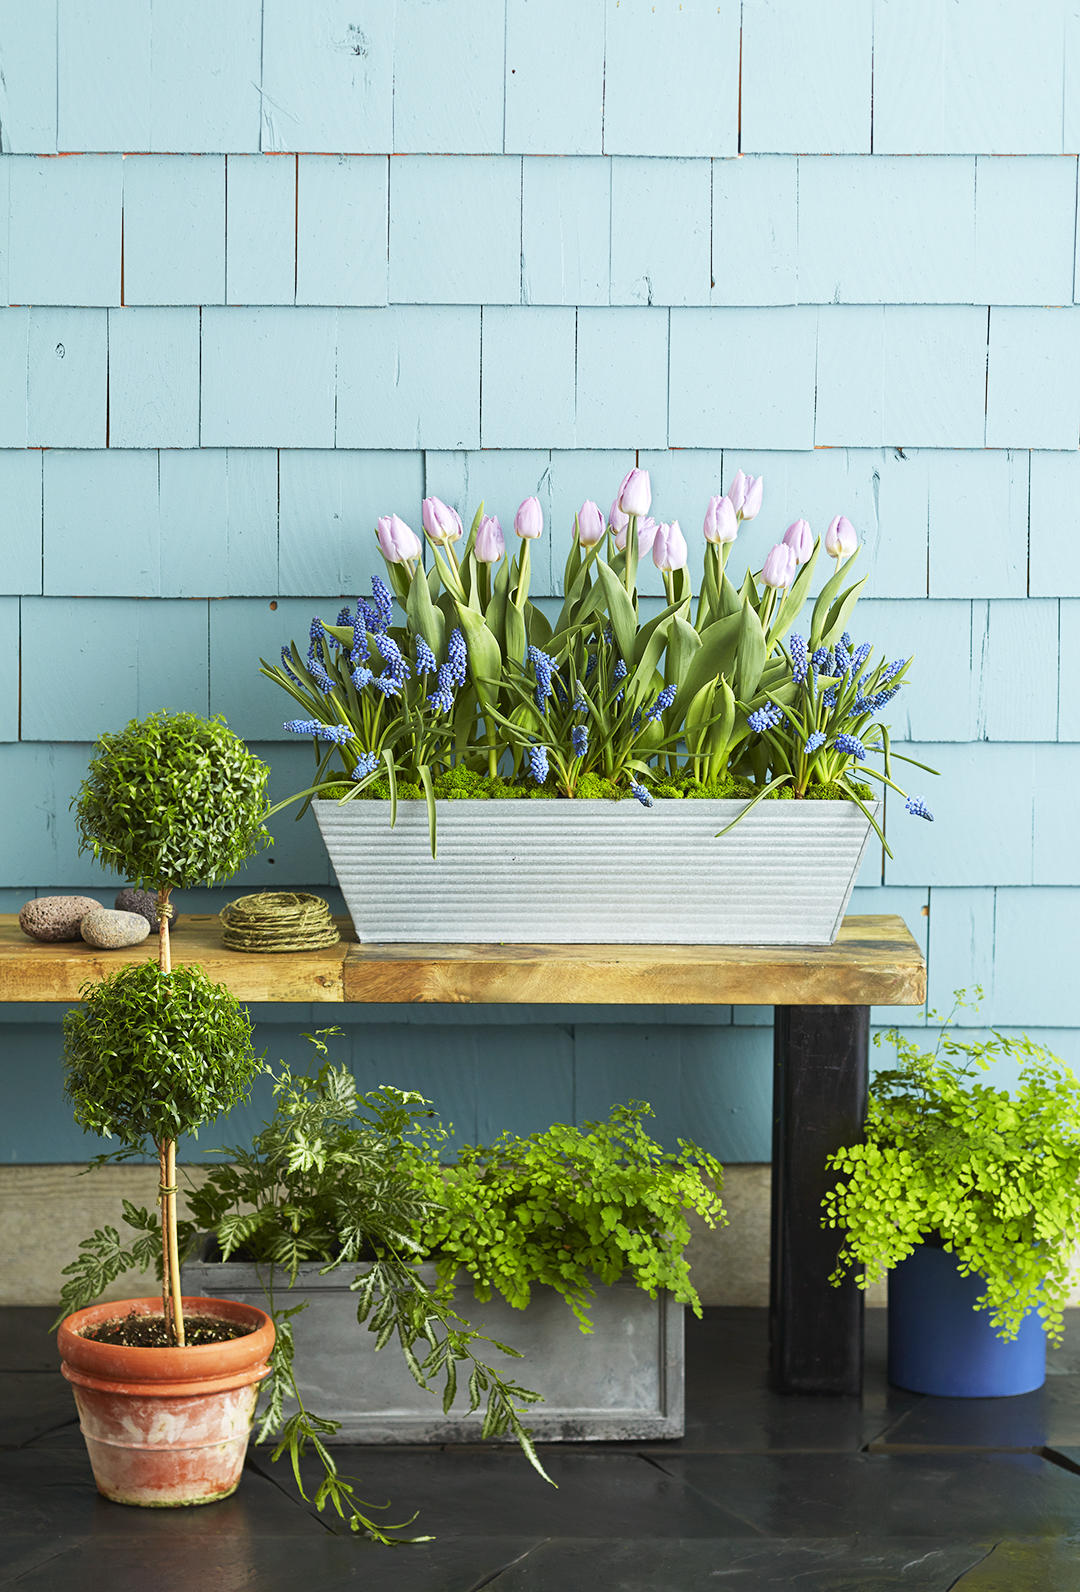 grape hyacinth and tulips in planter